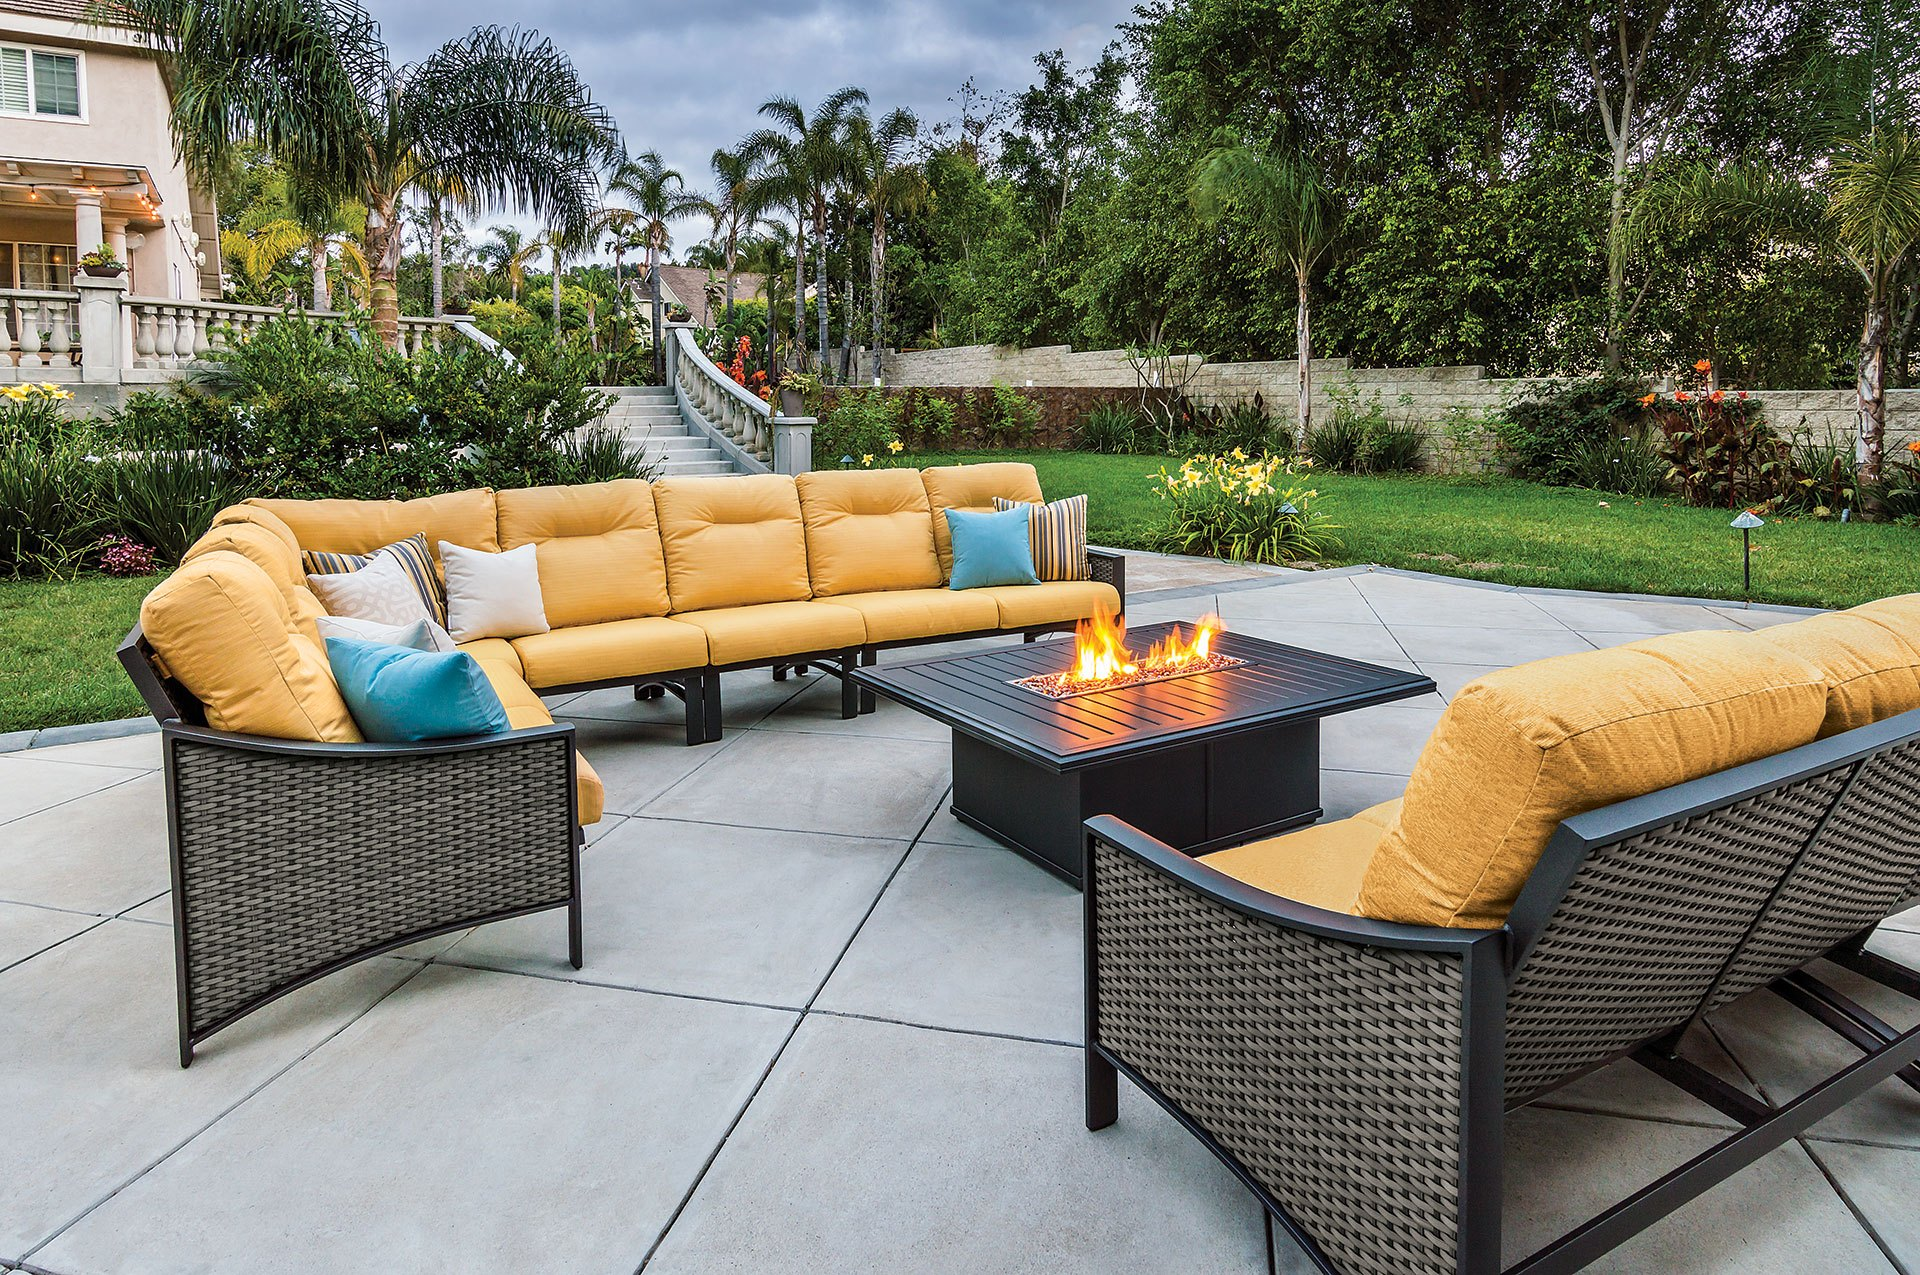 Tropitone Kenzo Woven 6 Piece Sectional Shown With A